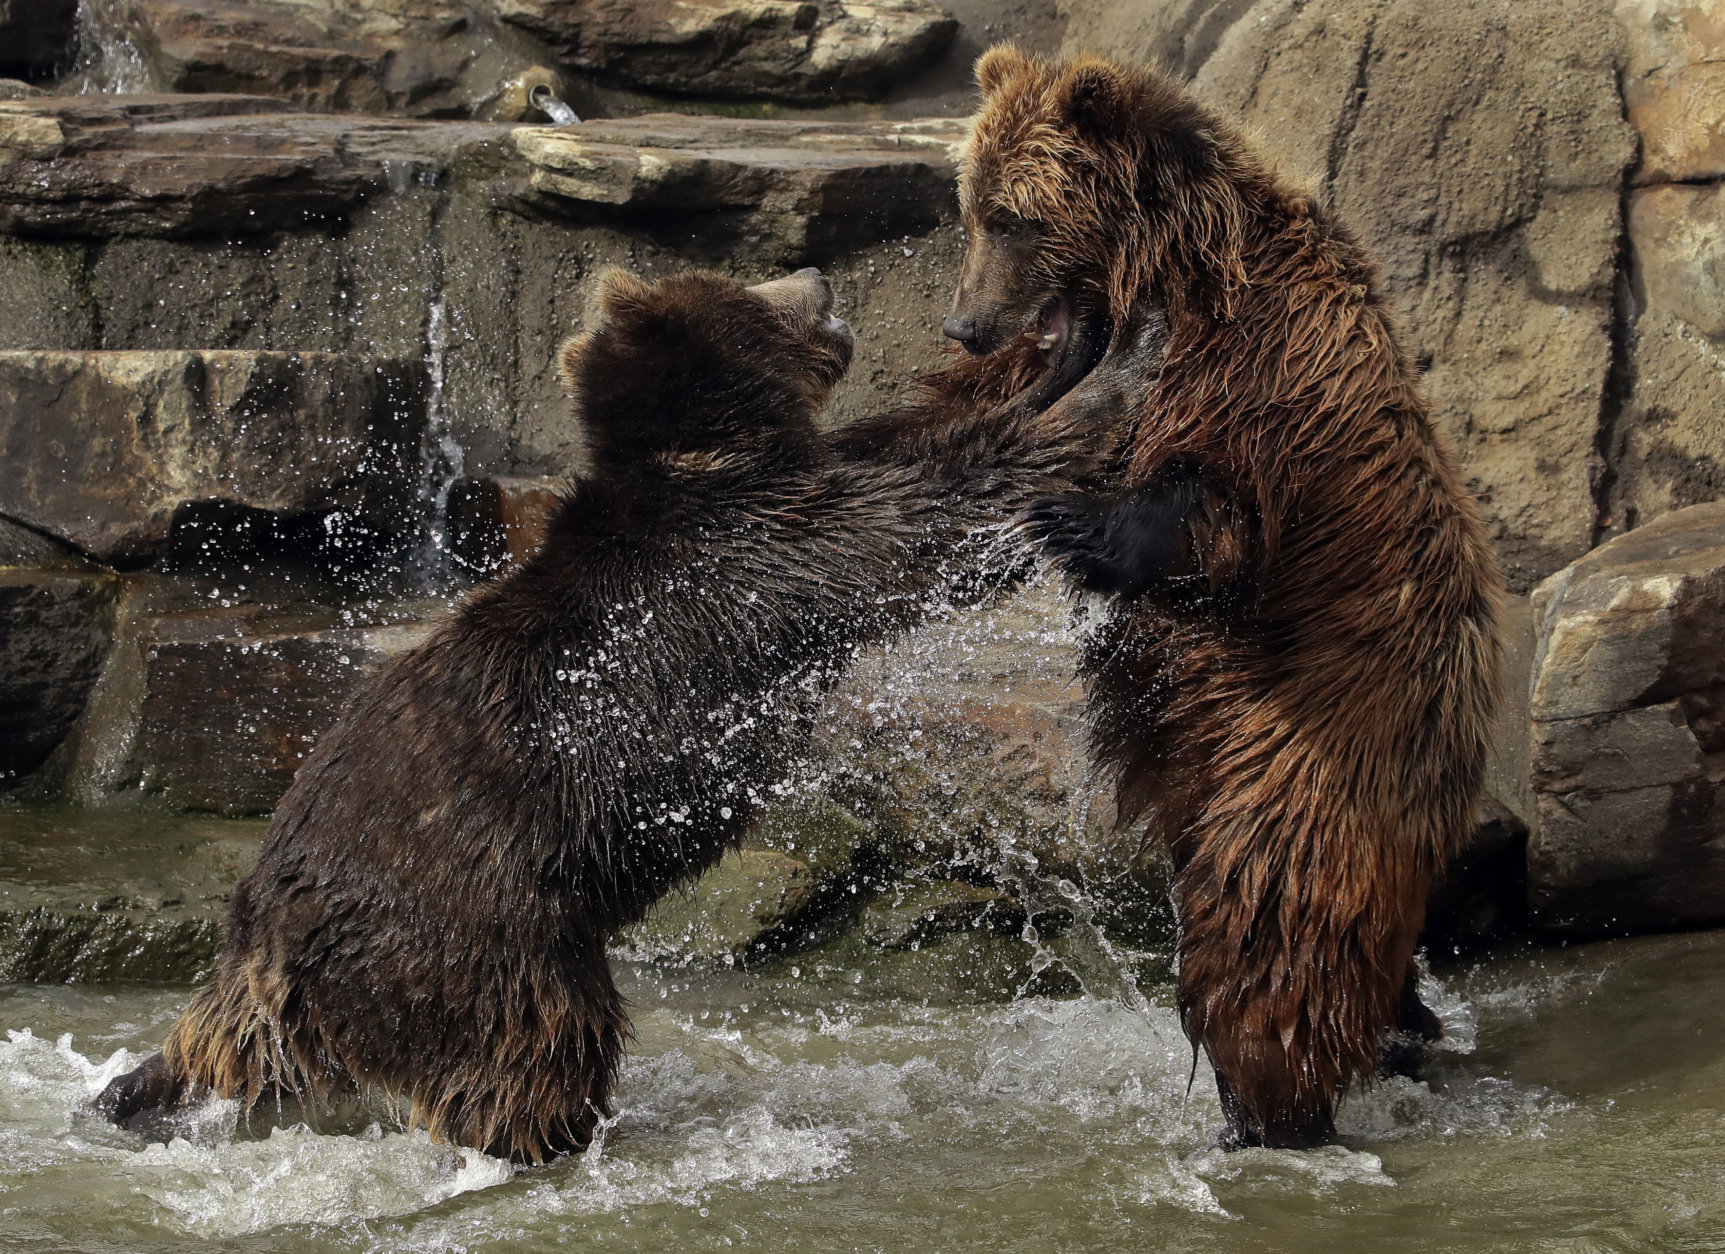 Bears frolic at the Oakland Zoo, which is closed for the day due to recent storms, on Thursday, Jan. 17, 2019, in Oakland, Calif.  (AP Photo/Ben Margot)